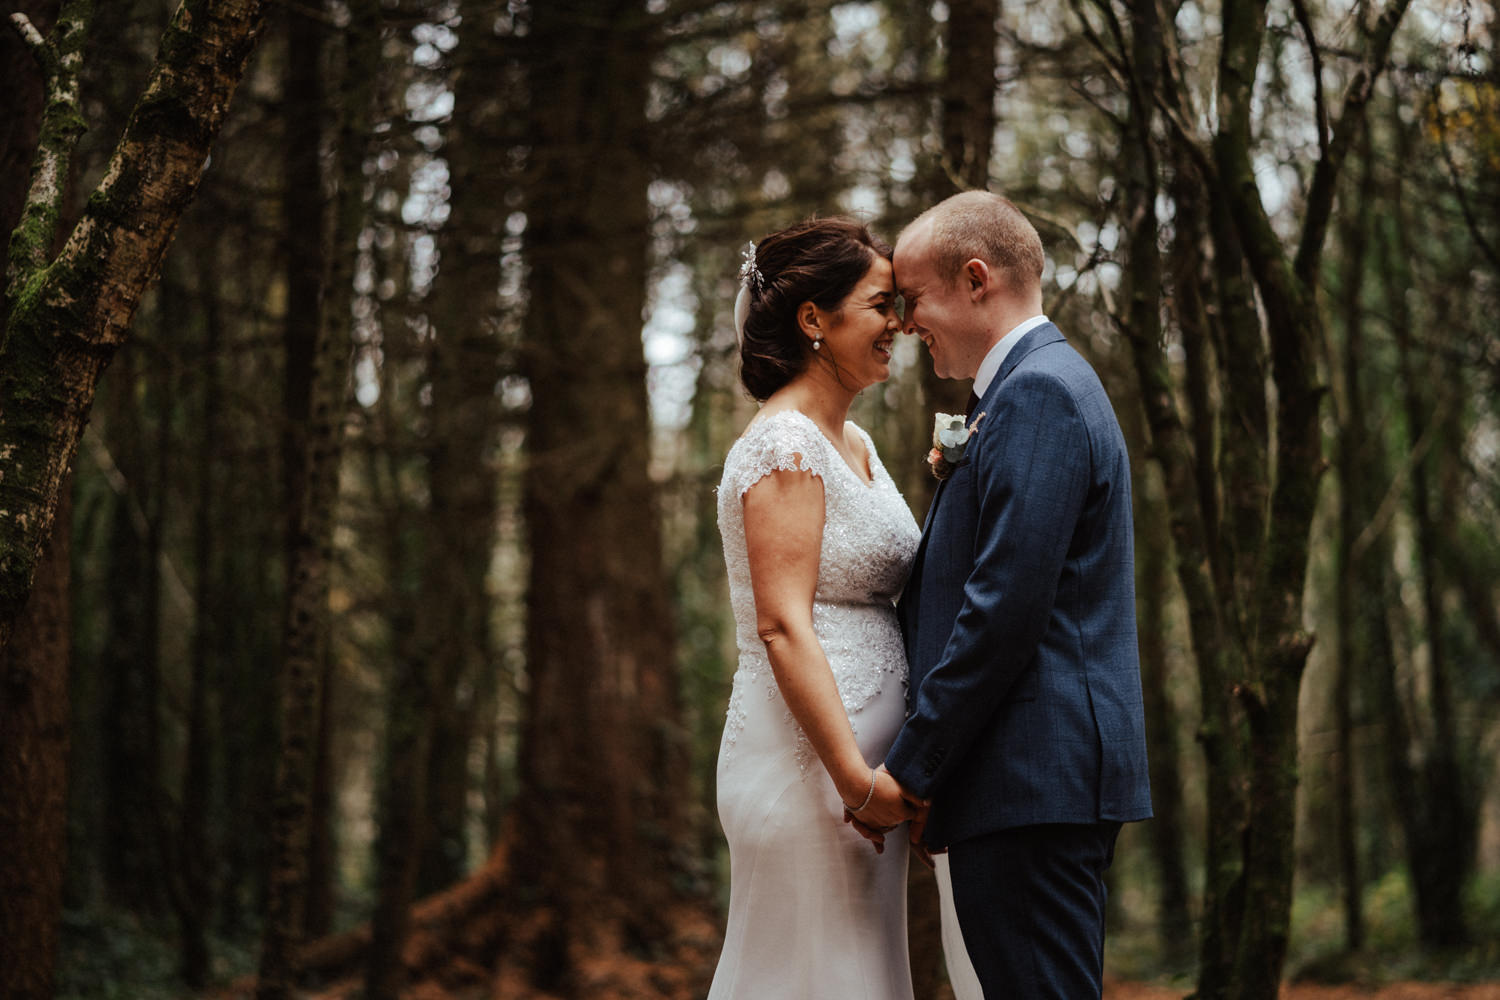 Wedding Photographer Limerick Bunratty Cratloe